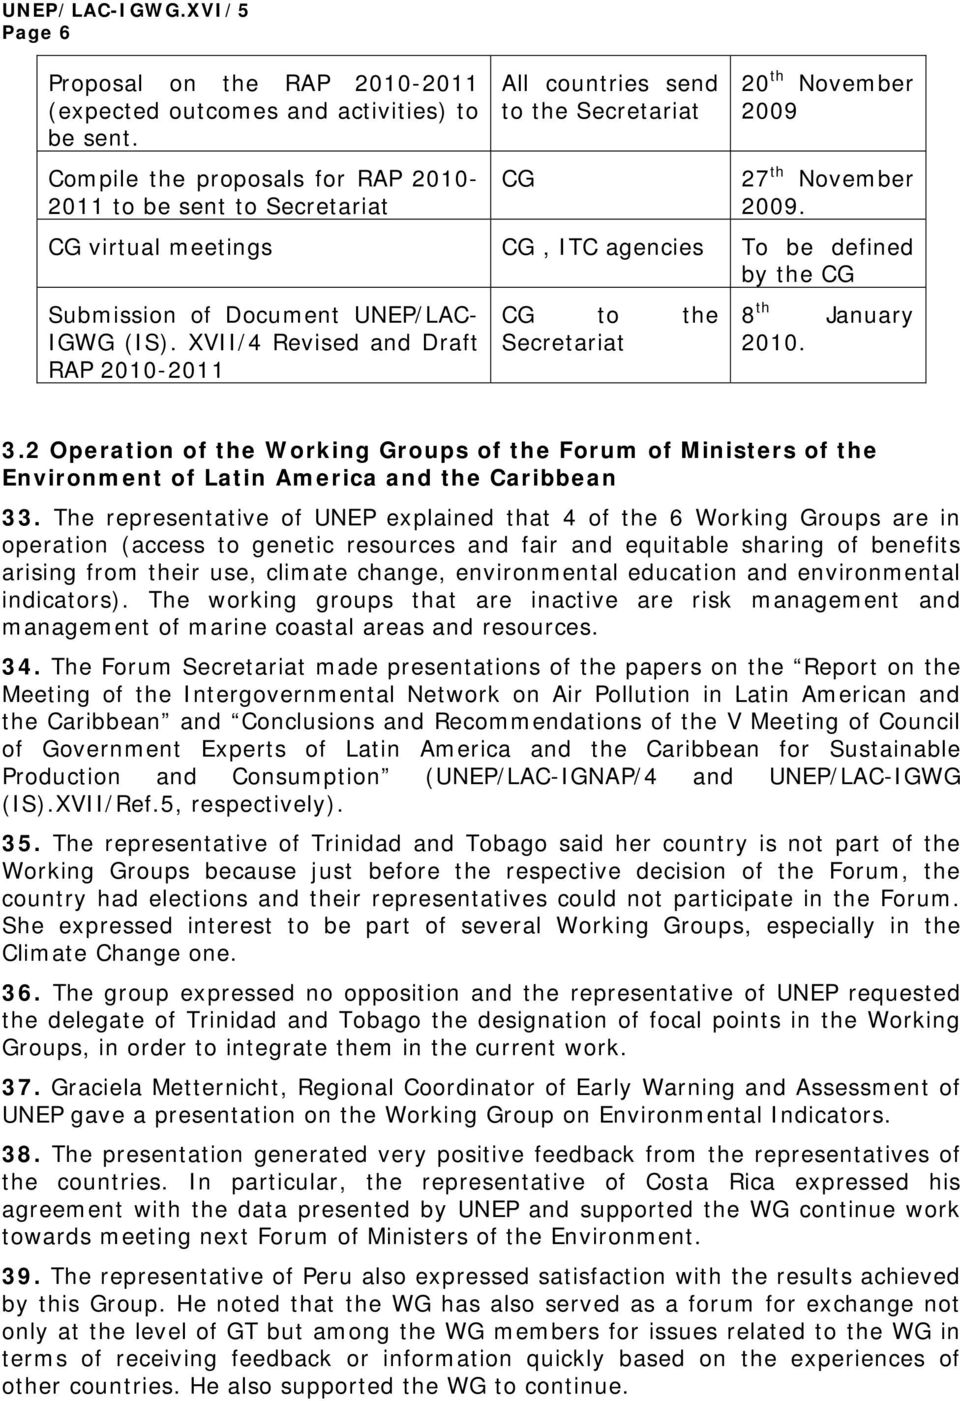 CG virtual meetings CG, ITC agencies To be defined by the CG Submission of Document UNEP/LAC- IGWG (IS). XVII/4 Revised and Draft RAP 2010-2011 CG to the Secretariat 8 th January 2010. 3.